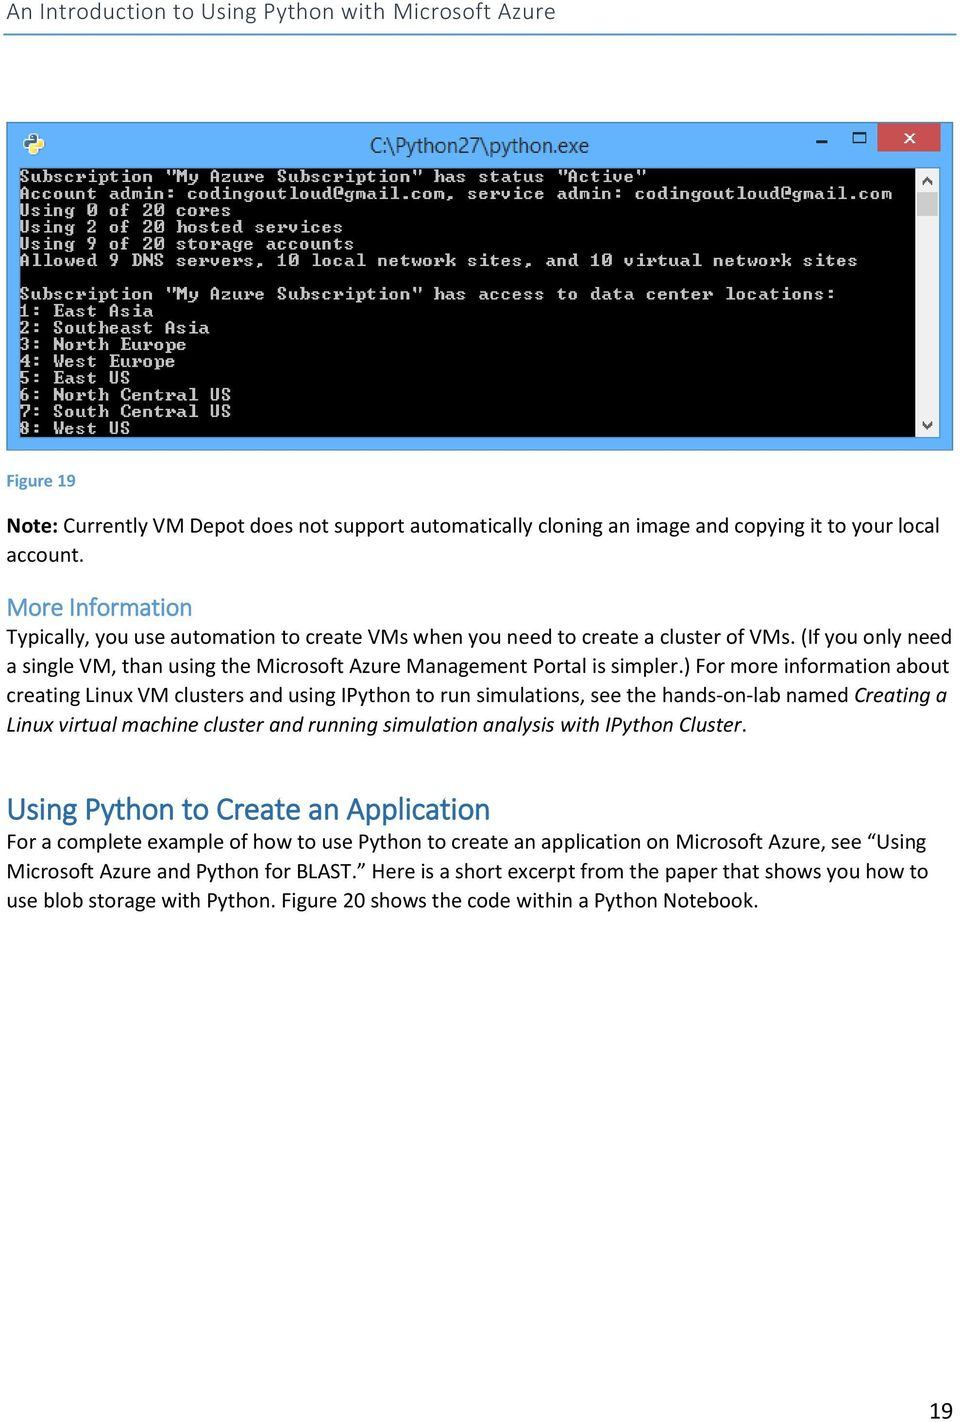 An Introduction to Using Python with Microsoft Azure - PDF